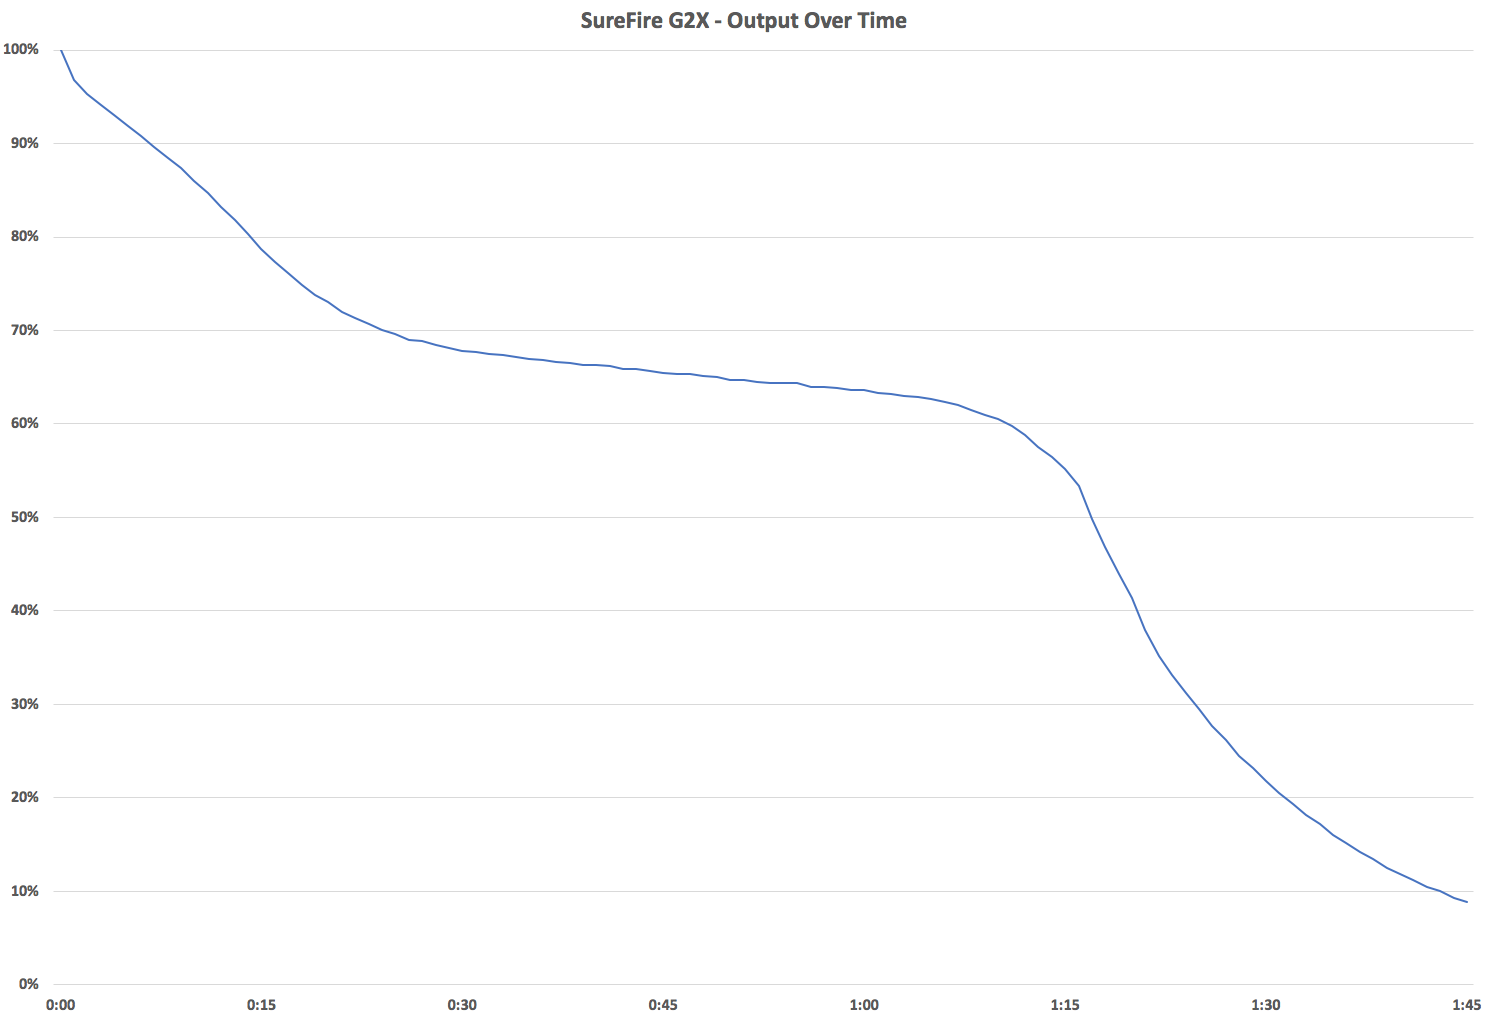 SureFire G2X Output Over Time